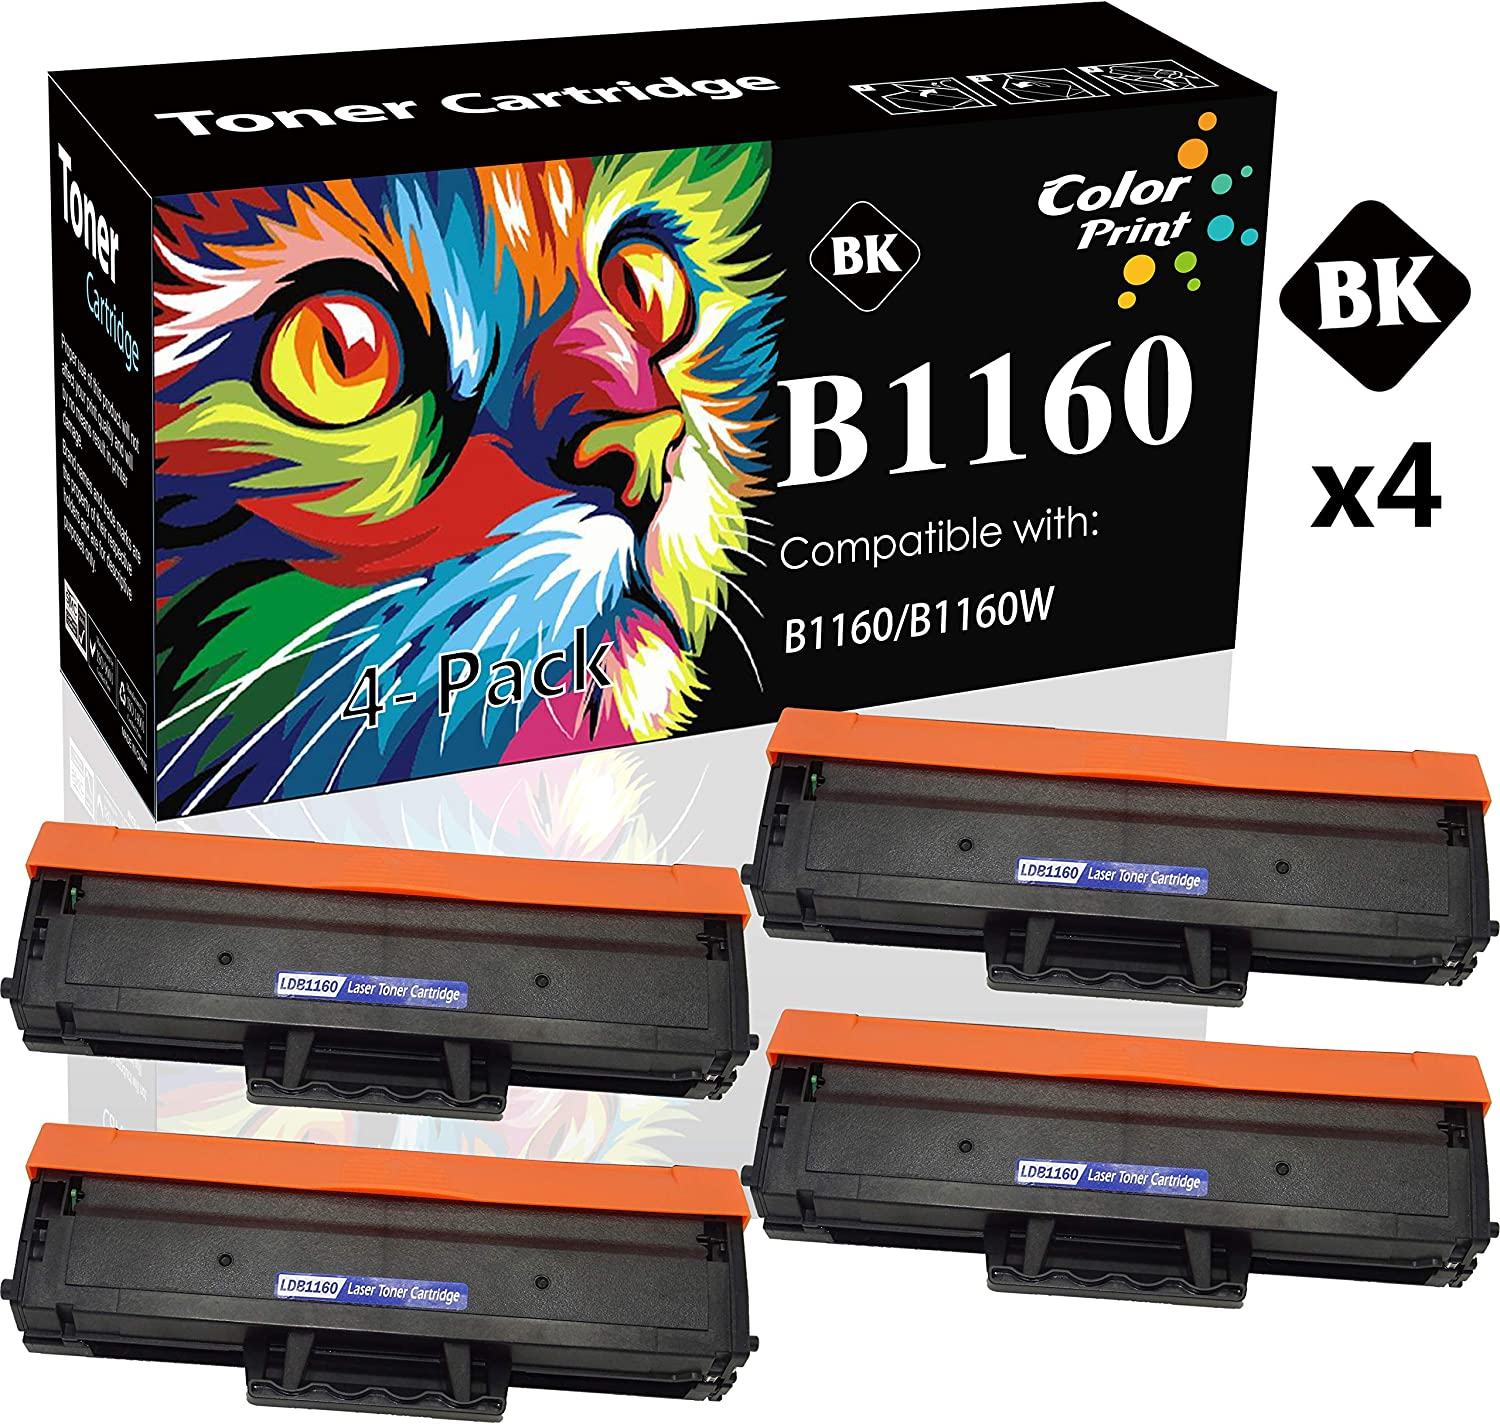 4-Pack ColorPrint Compatible Dell B1160w YK1PM 1160 331-7335 HF44N HF442 B1160 Toner Cartridge Used for Dell 1160 B1163w B1165nfw Mono Laser Printers (Black)